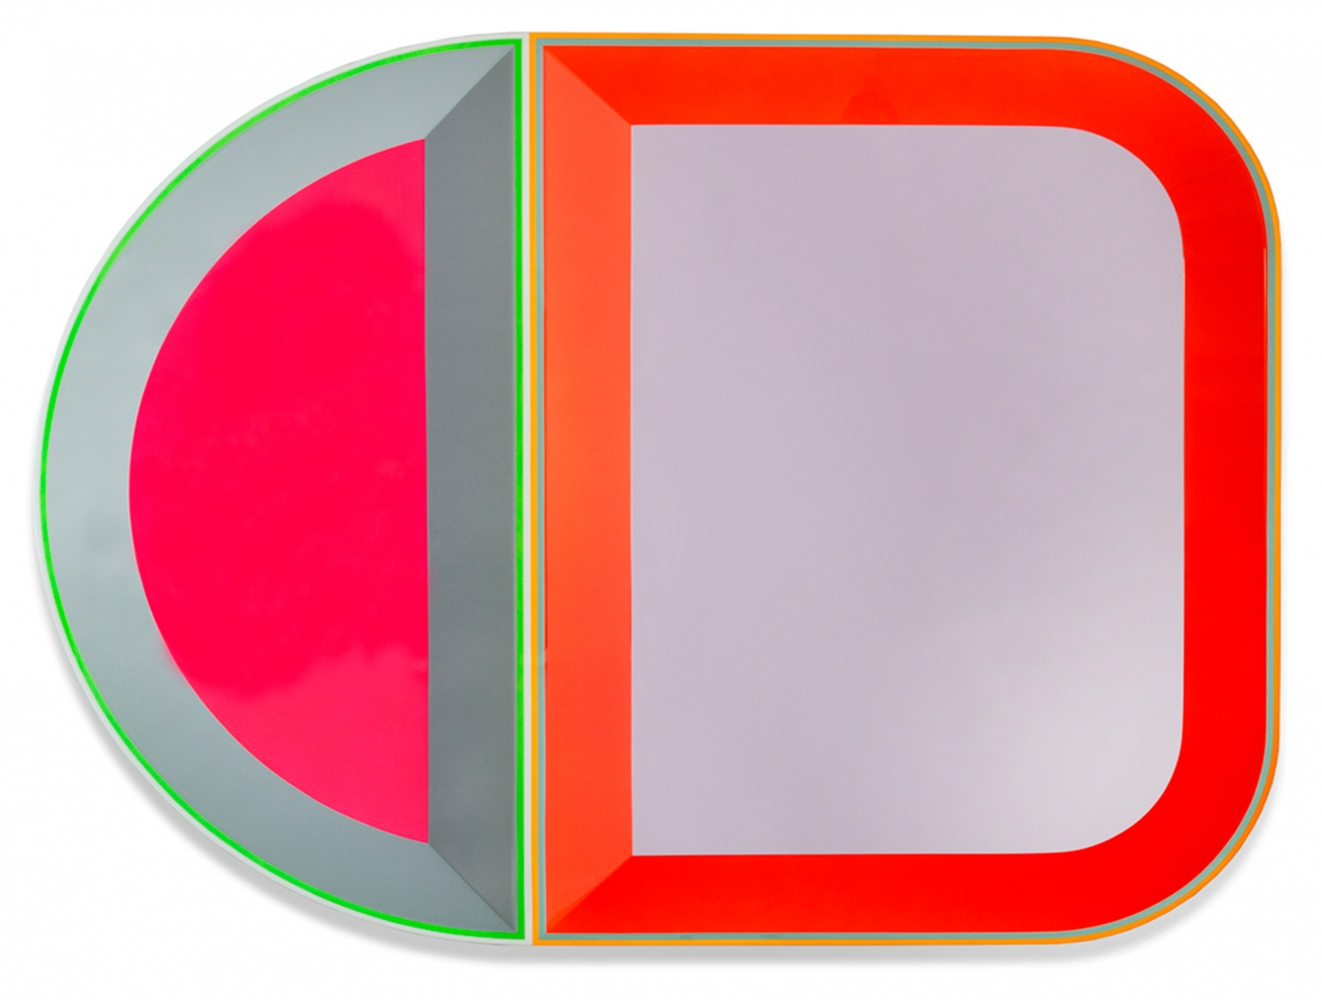 Beverly Fishman, Untitled (A + C), 2016